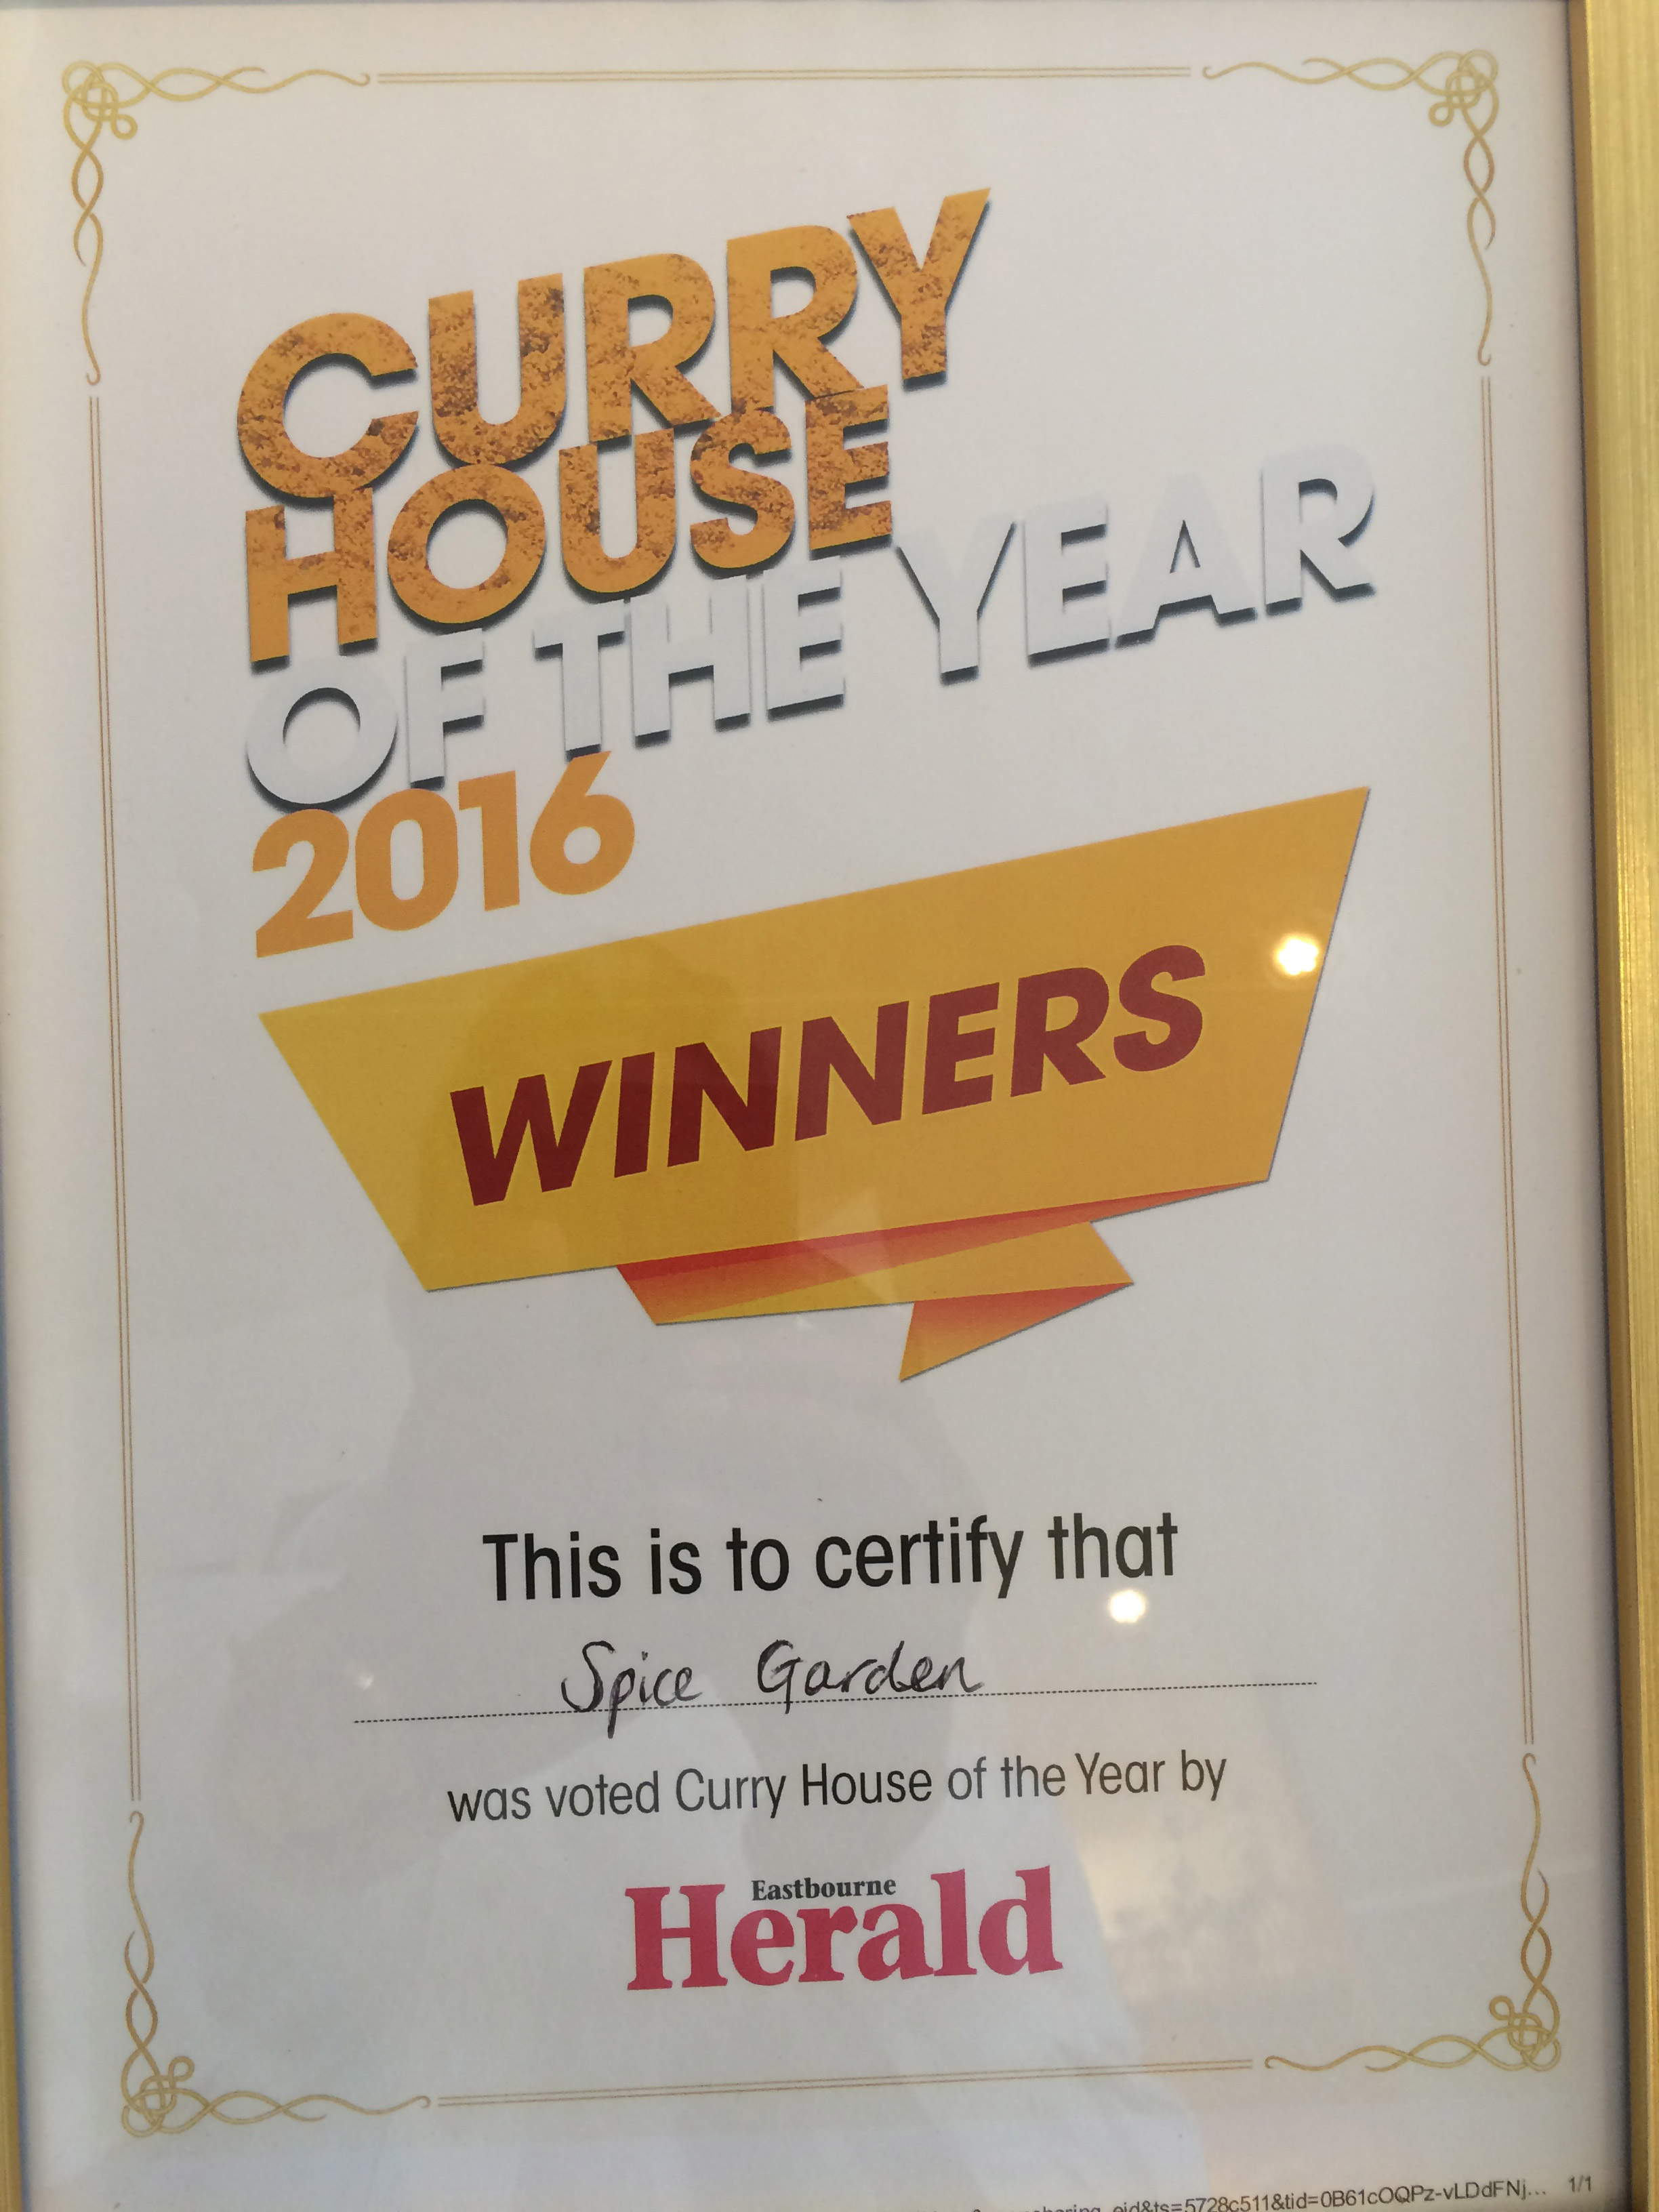 Curry house award 2016